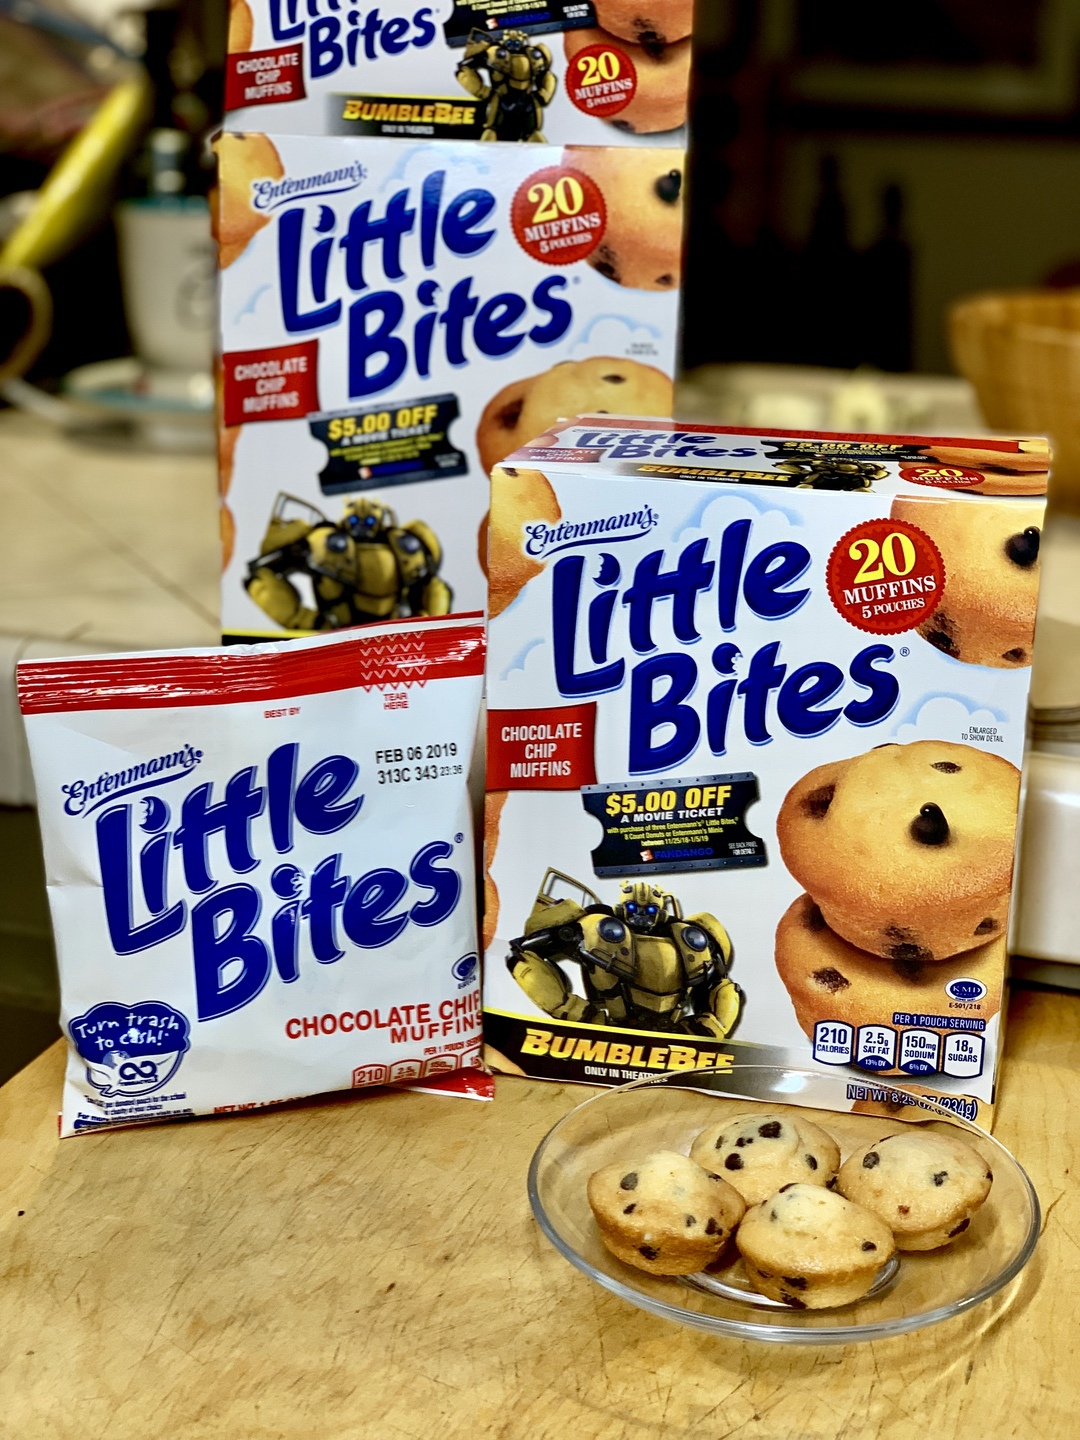 Entenmann's and Bumblebee Movie Deal #Entenmanns #BumblebeeMovie #Bumblebee #movies #giveaway #ad